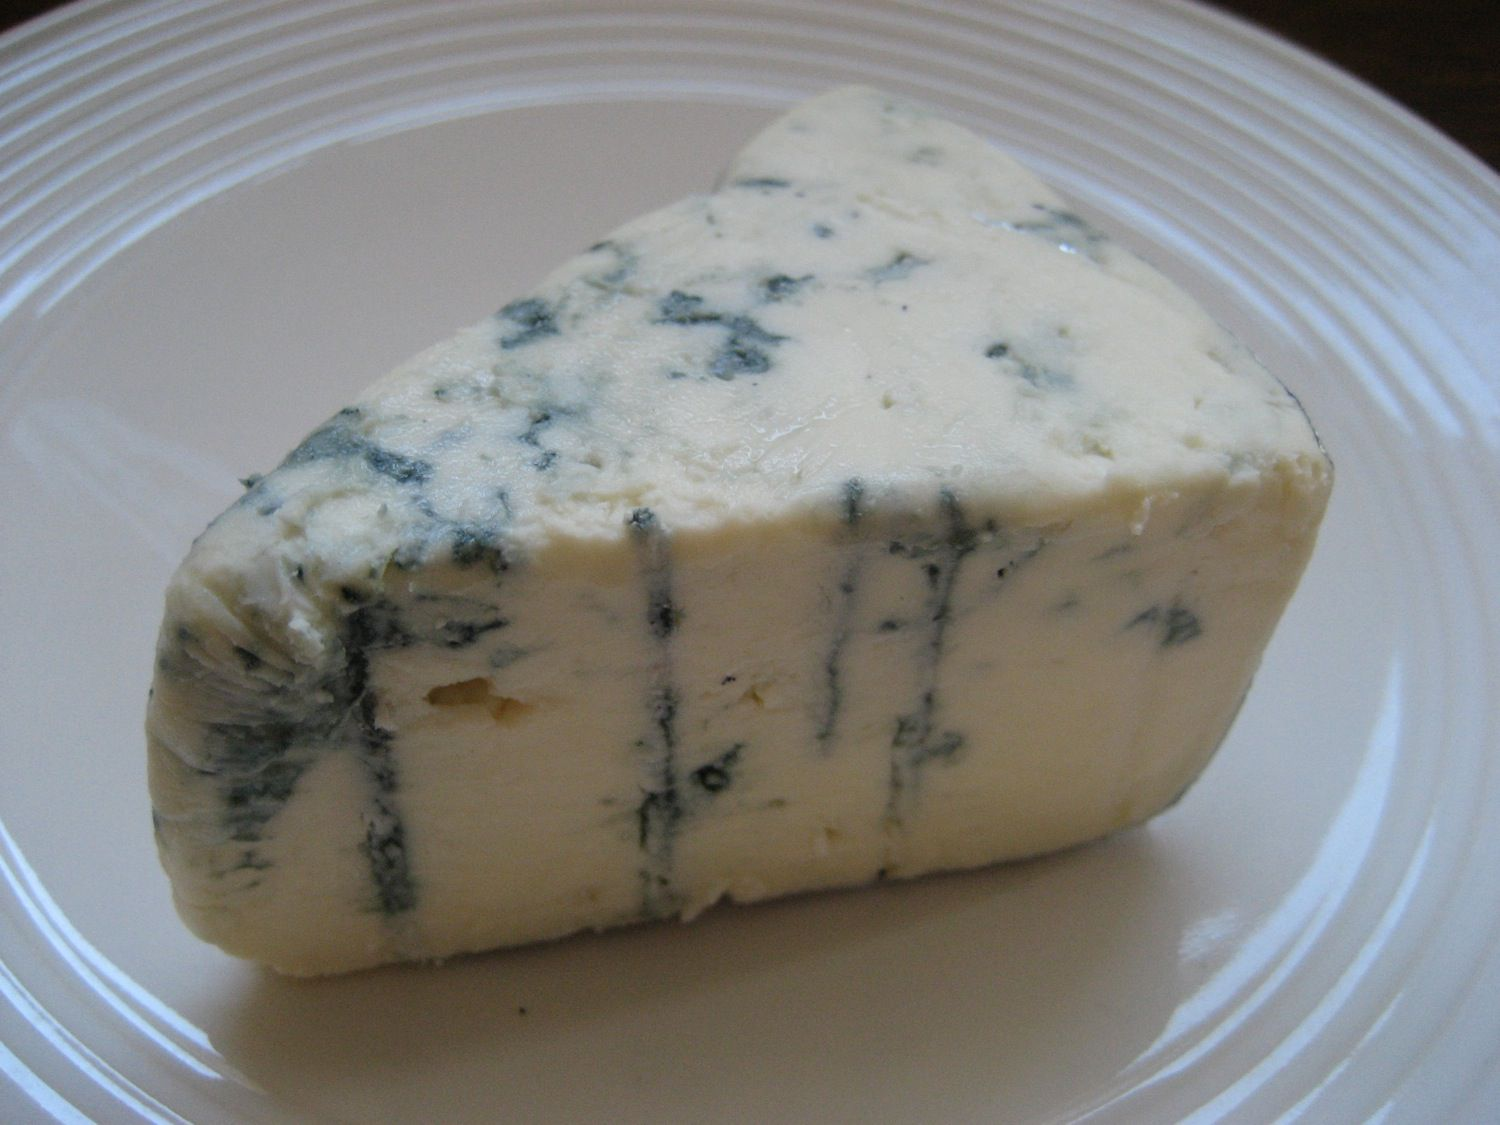 Maytag Blue Cheese Tours